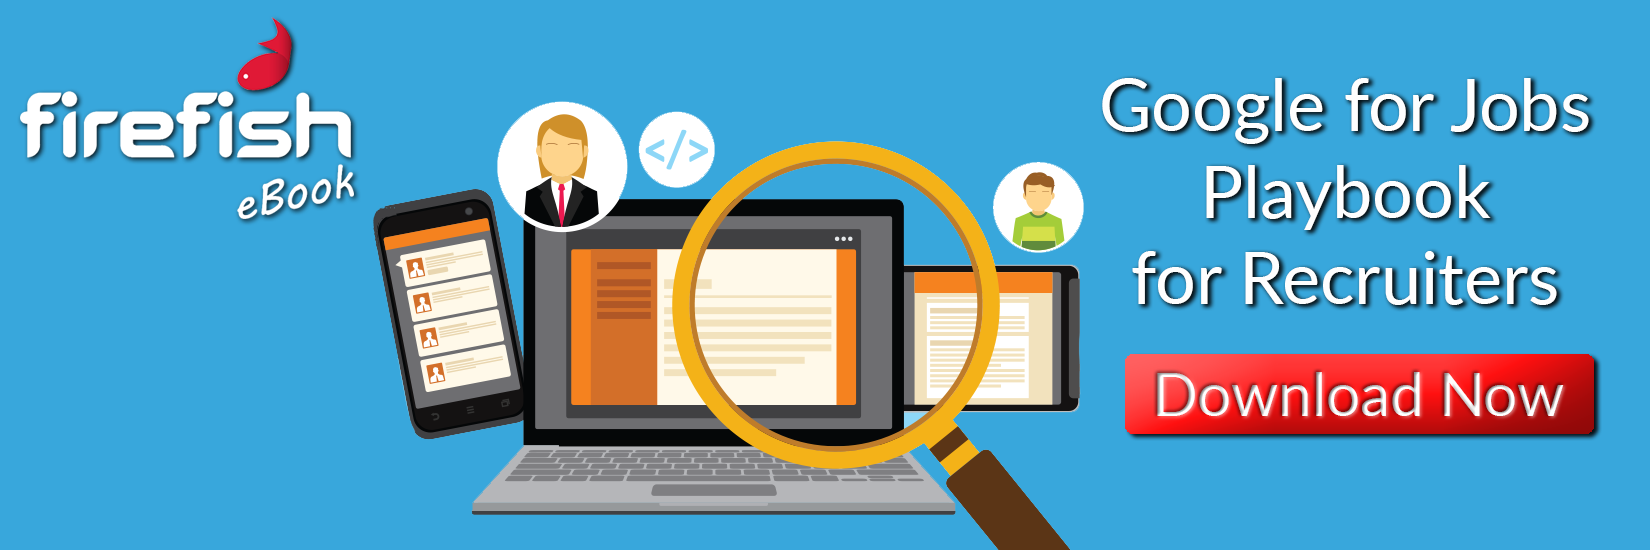 online job search with magnifying glass